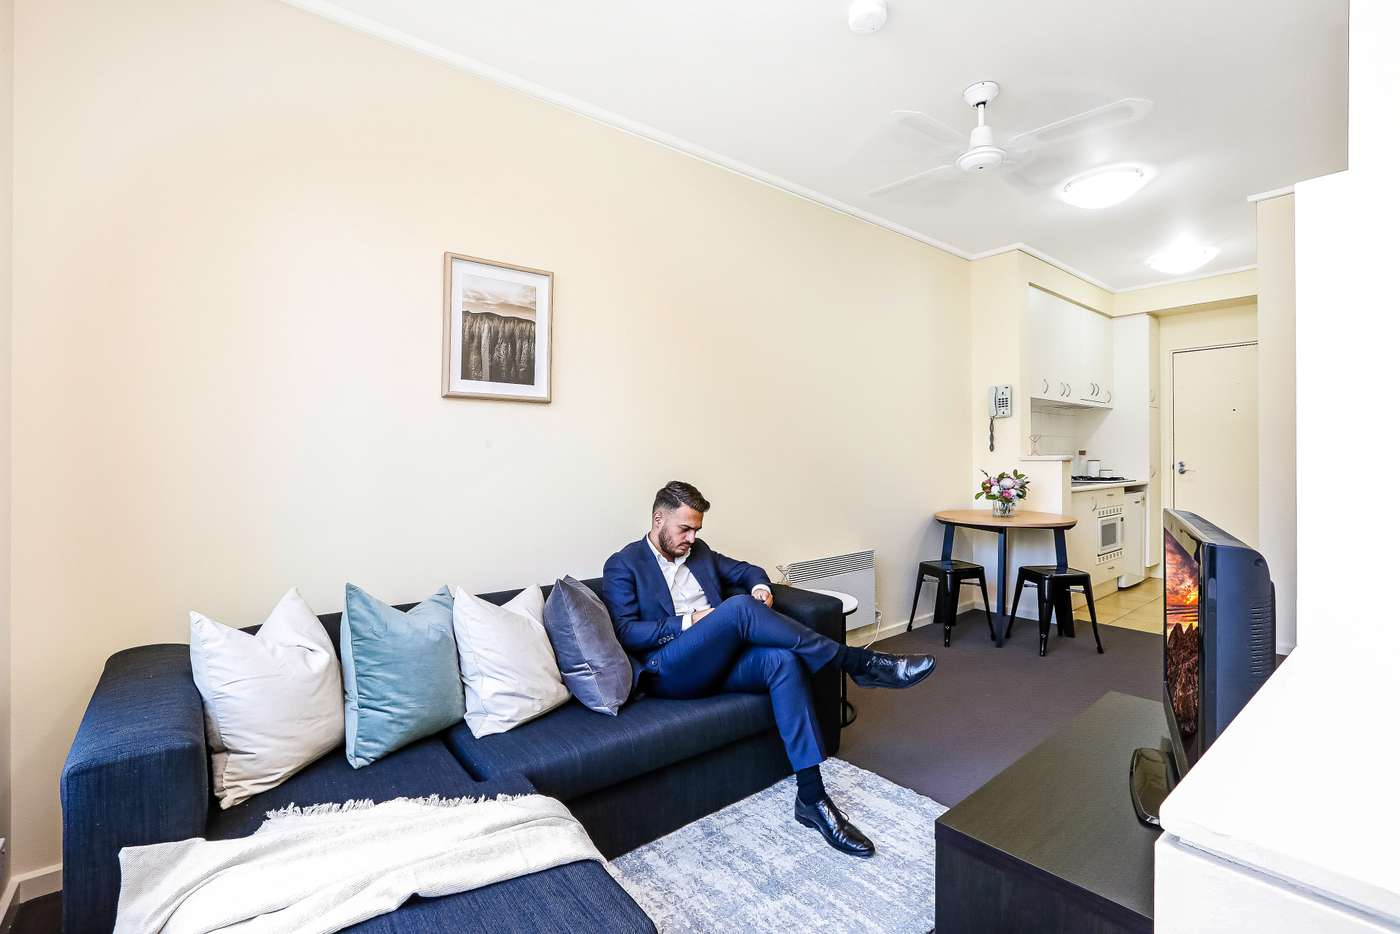 Main view of Homely apartment listing, 5119/570 Lygon Street, Carlton VIC 3053